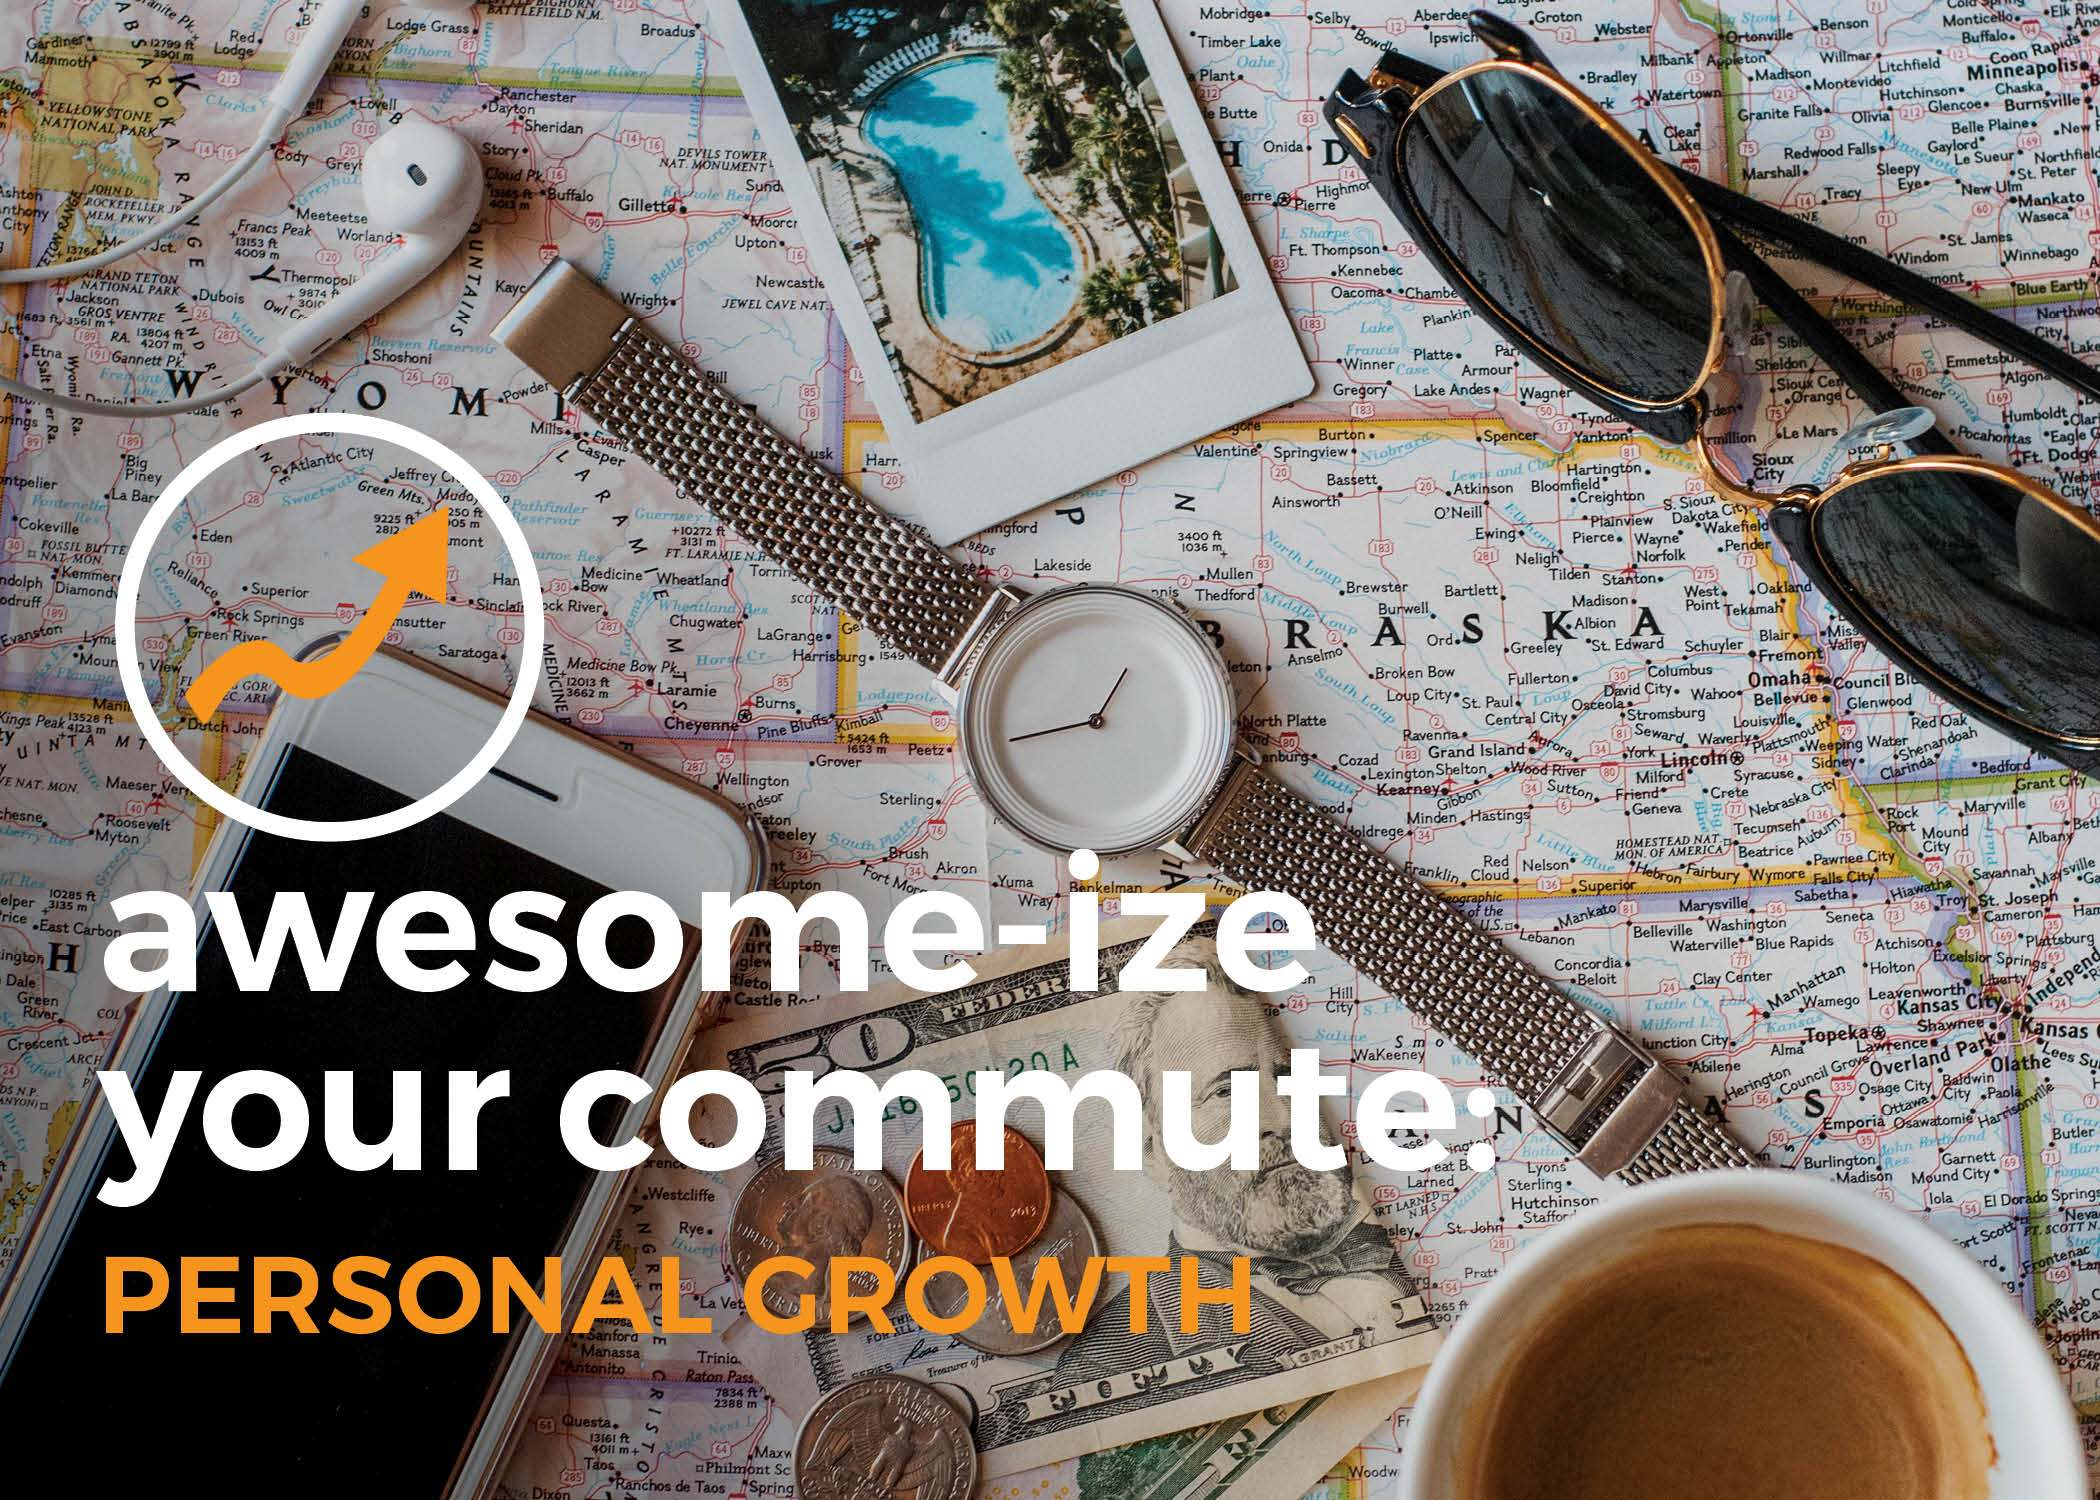 2016 10 21 Say Blogsocial12 Awesomeize Personalgrowth